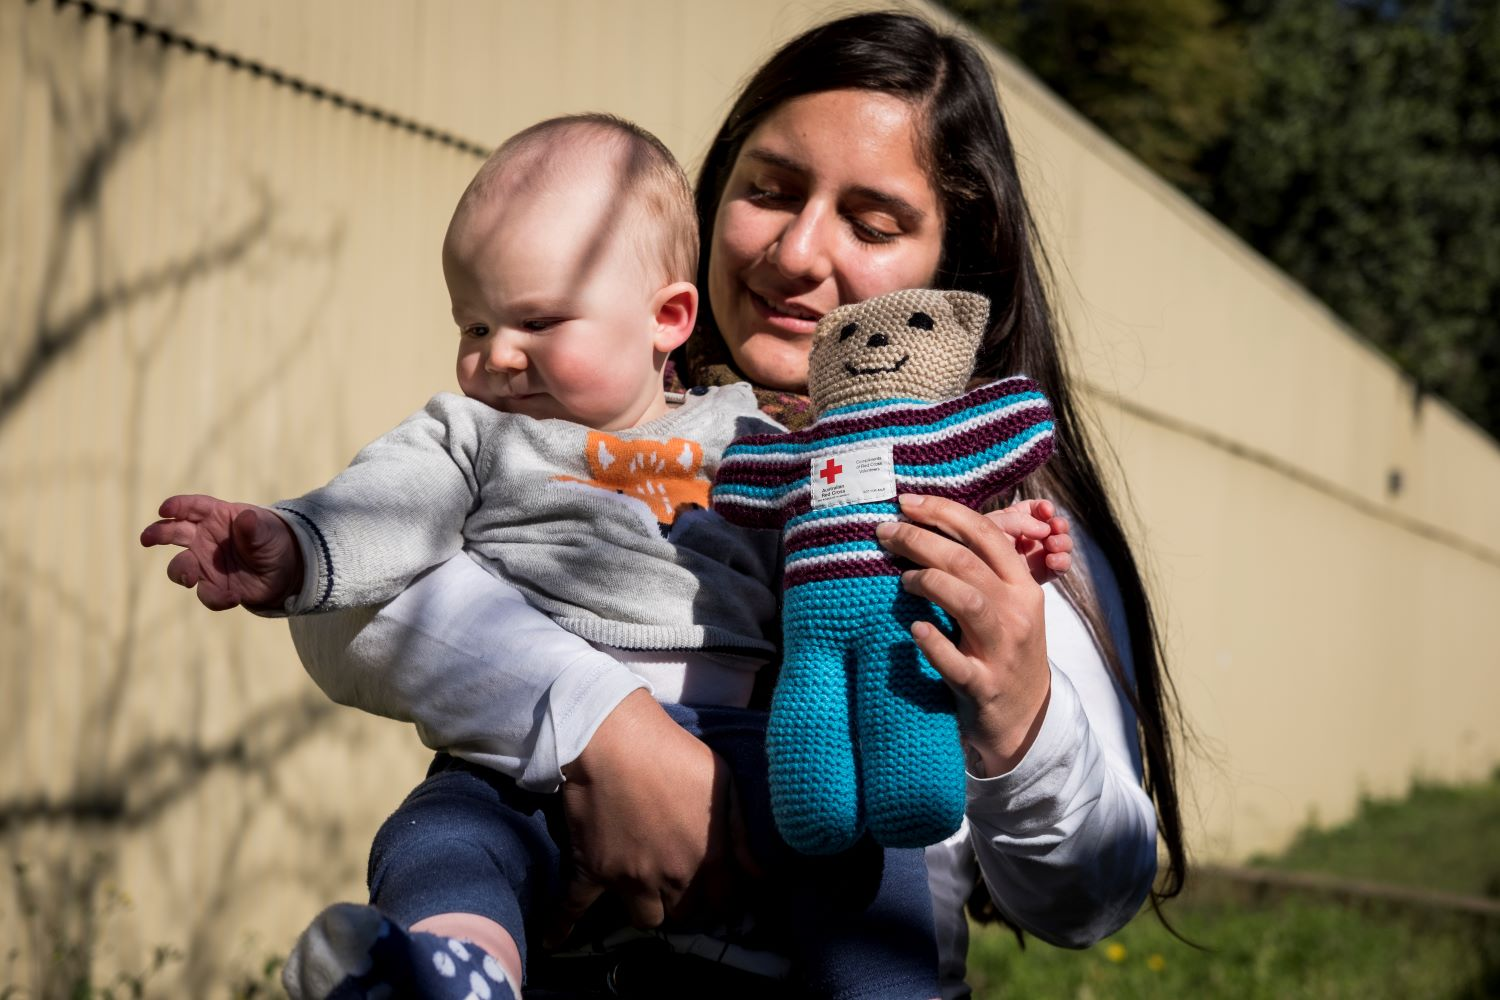 Australian Red Cross, Charity Gifts, New Baby Essentials Kit Helping A Newly Arrived Family Seeking Asylum